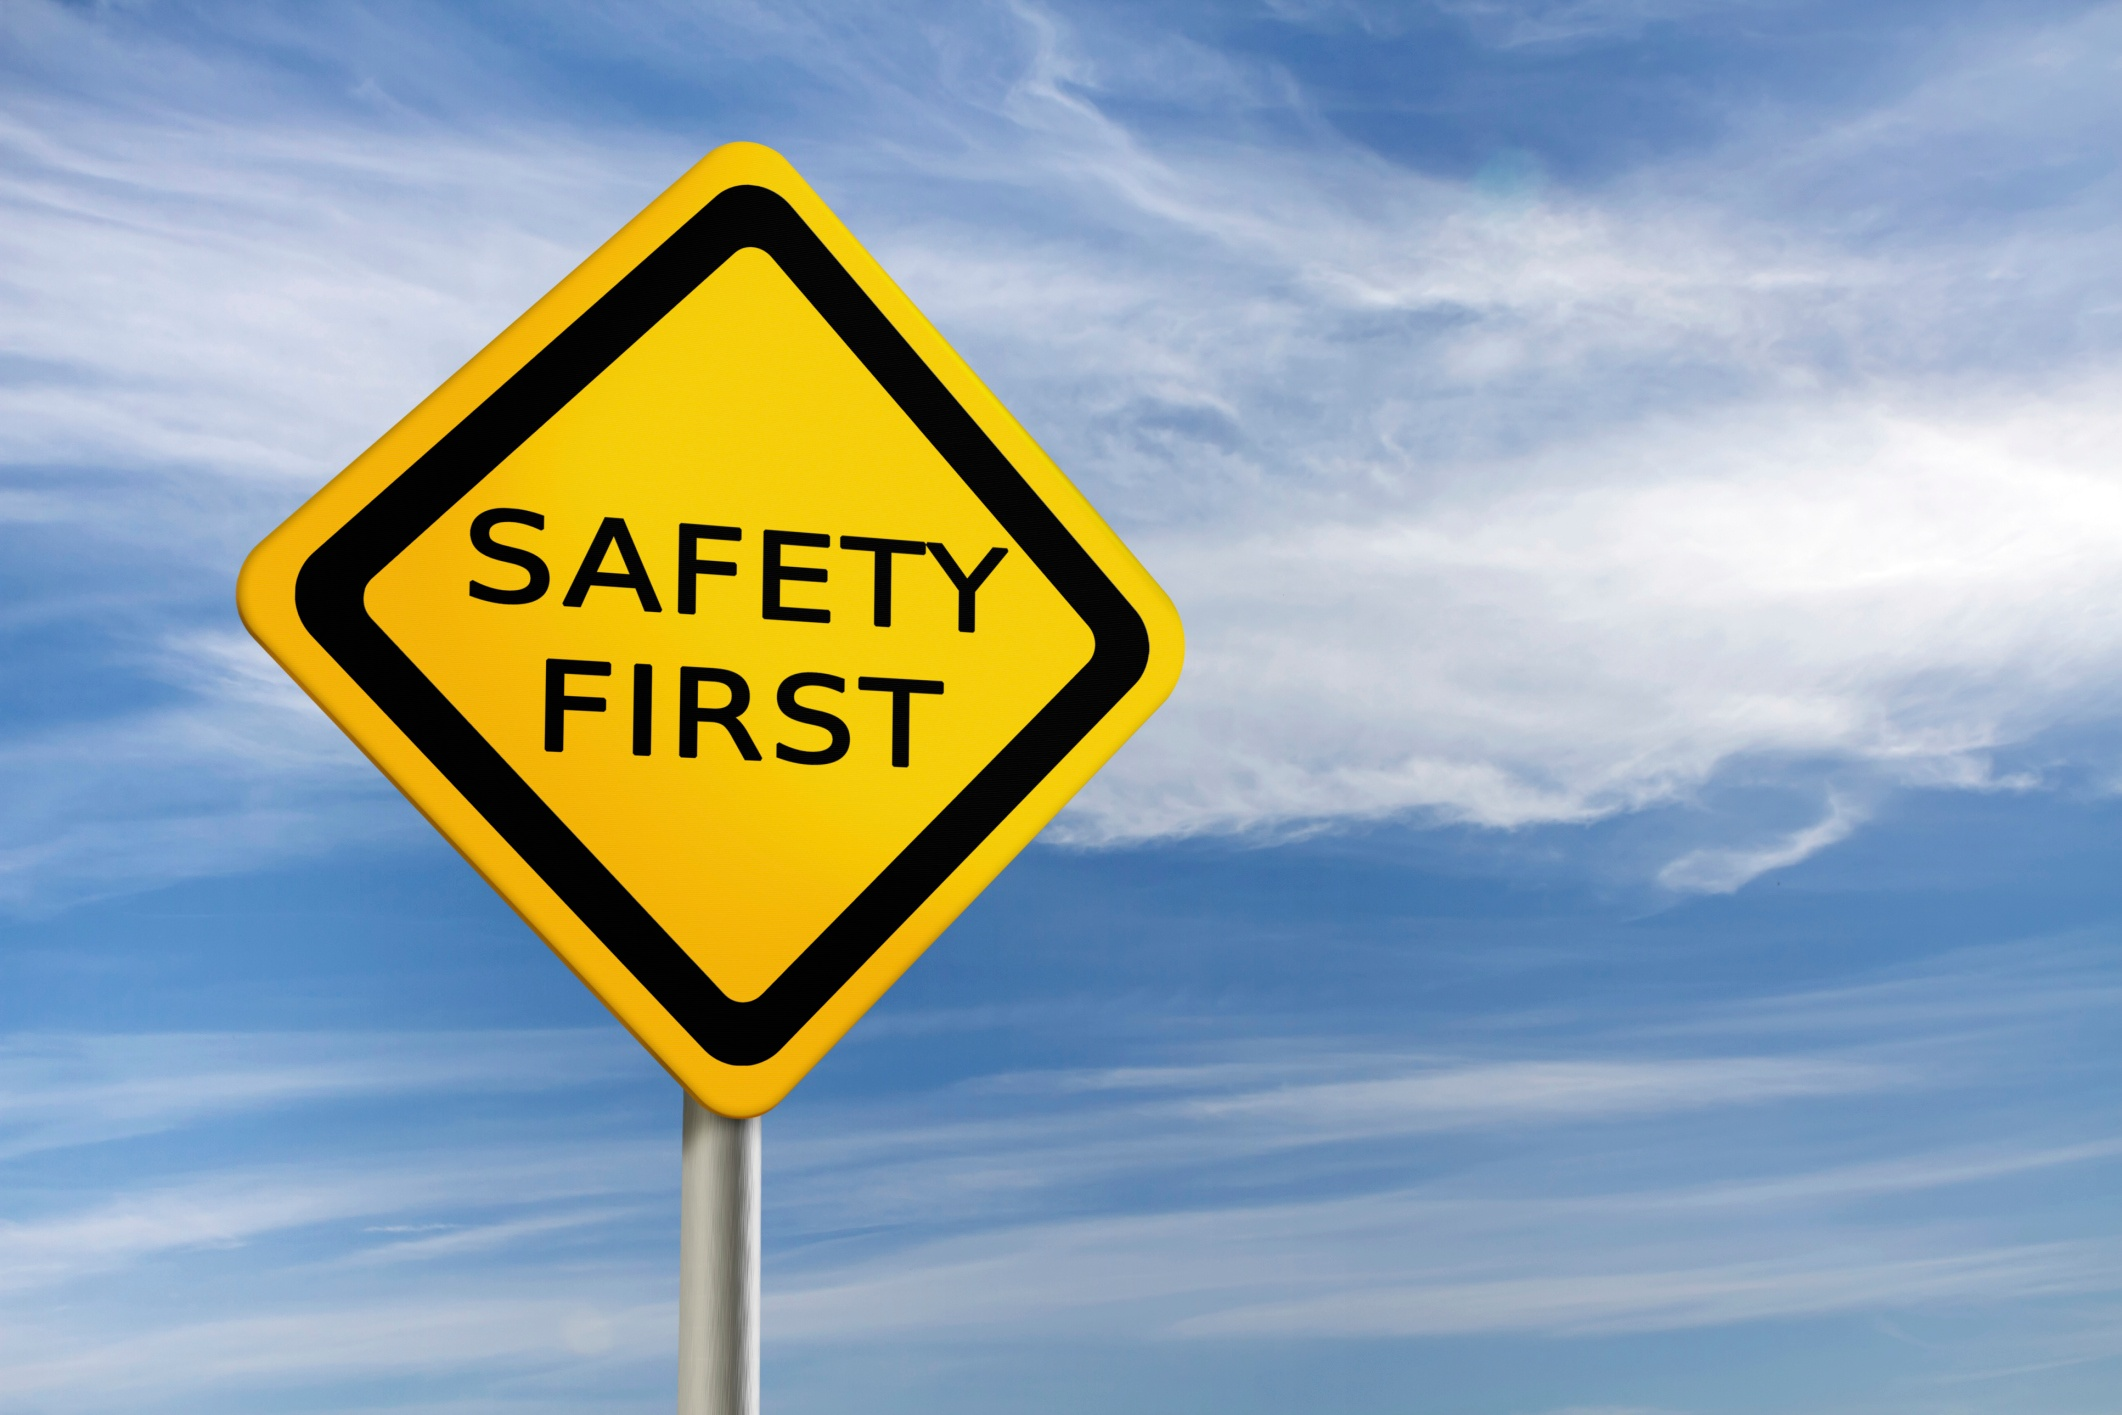 Discover why you should replace damaged safety equipment.